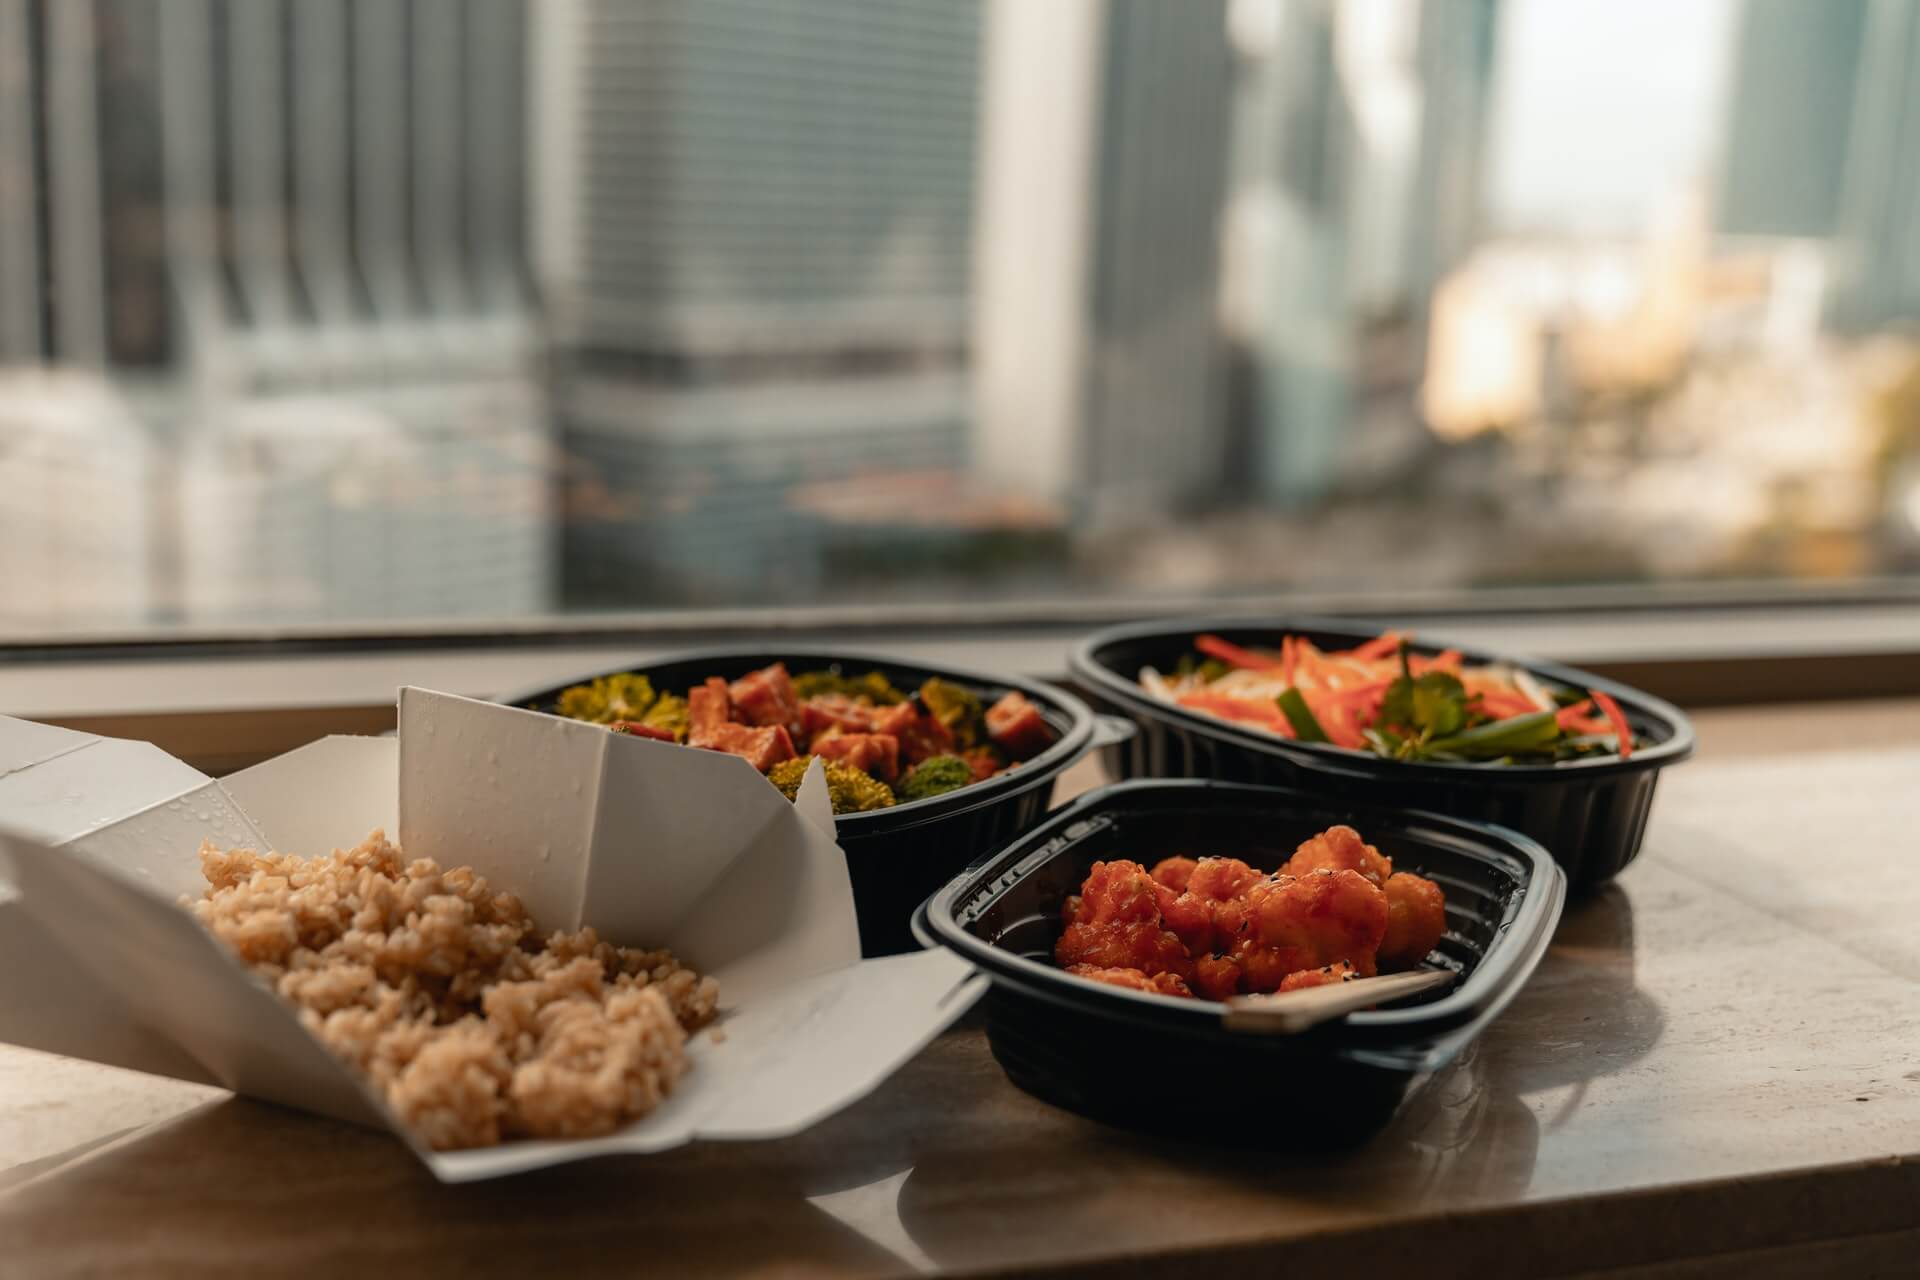 Take out food on table after premises liability accident